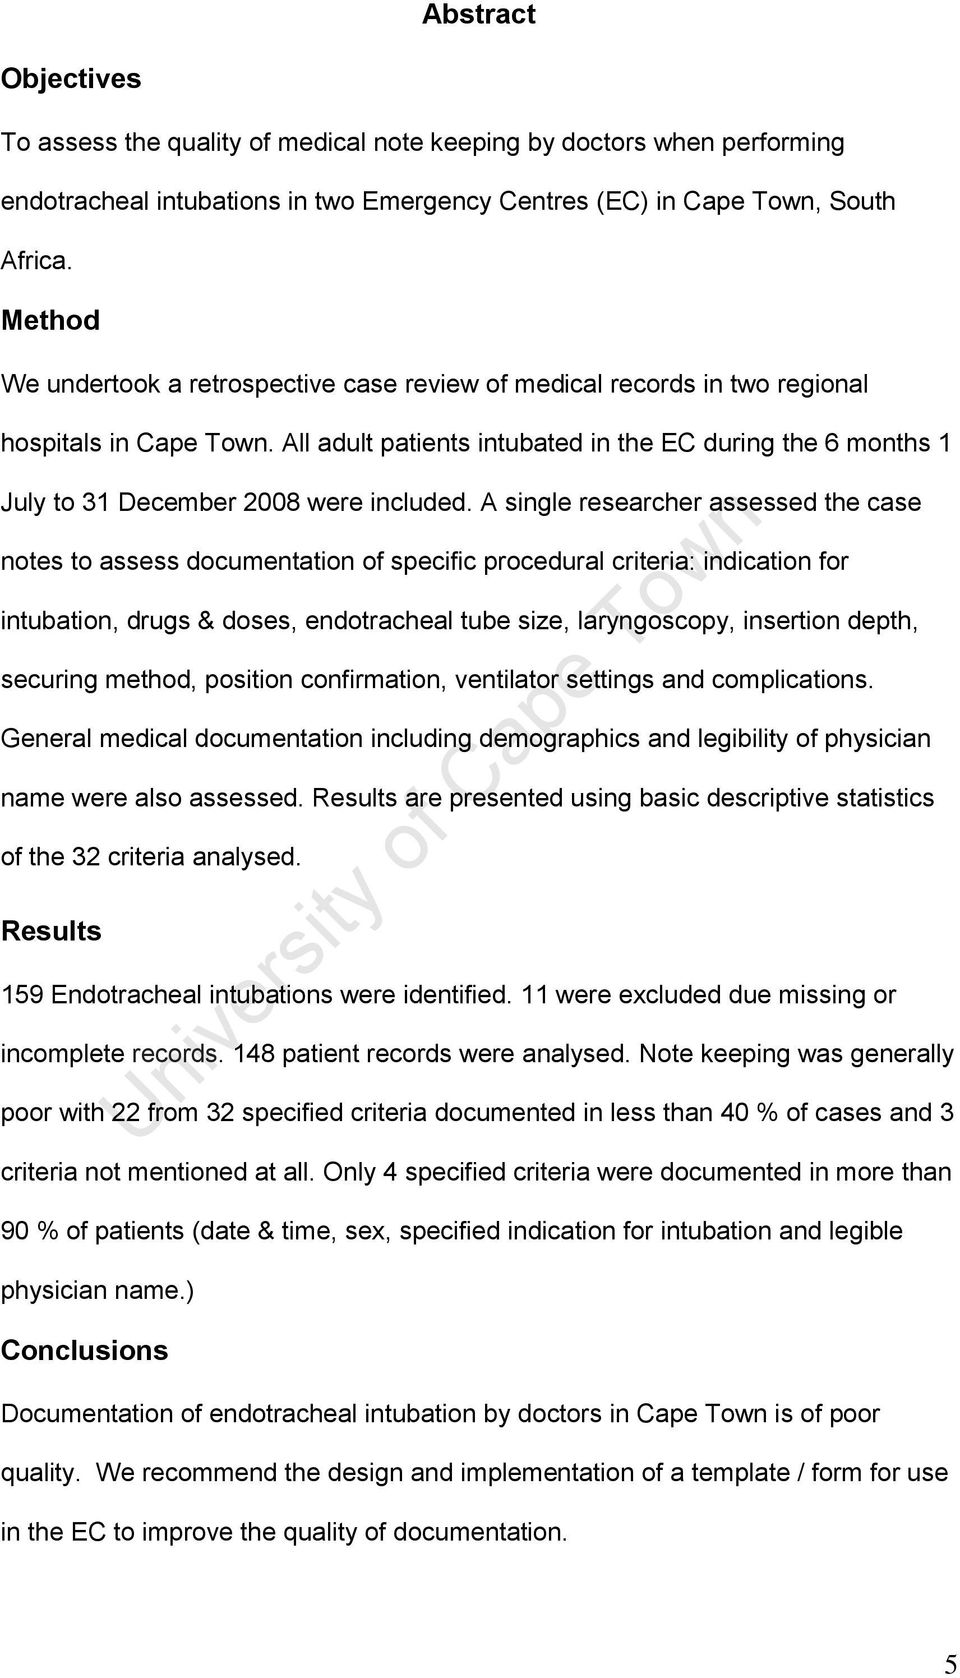 All adult patients intubated in the EC during the 6 months 1 July to 31 December 2008 were included.